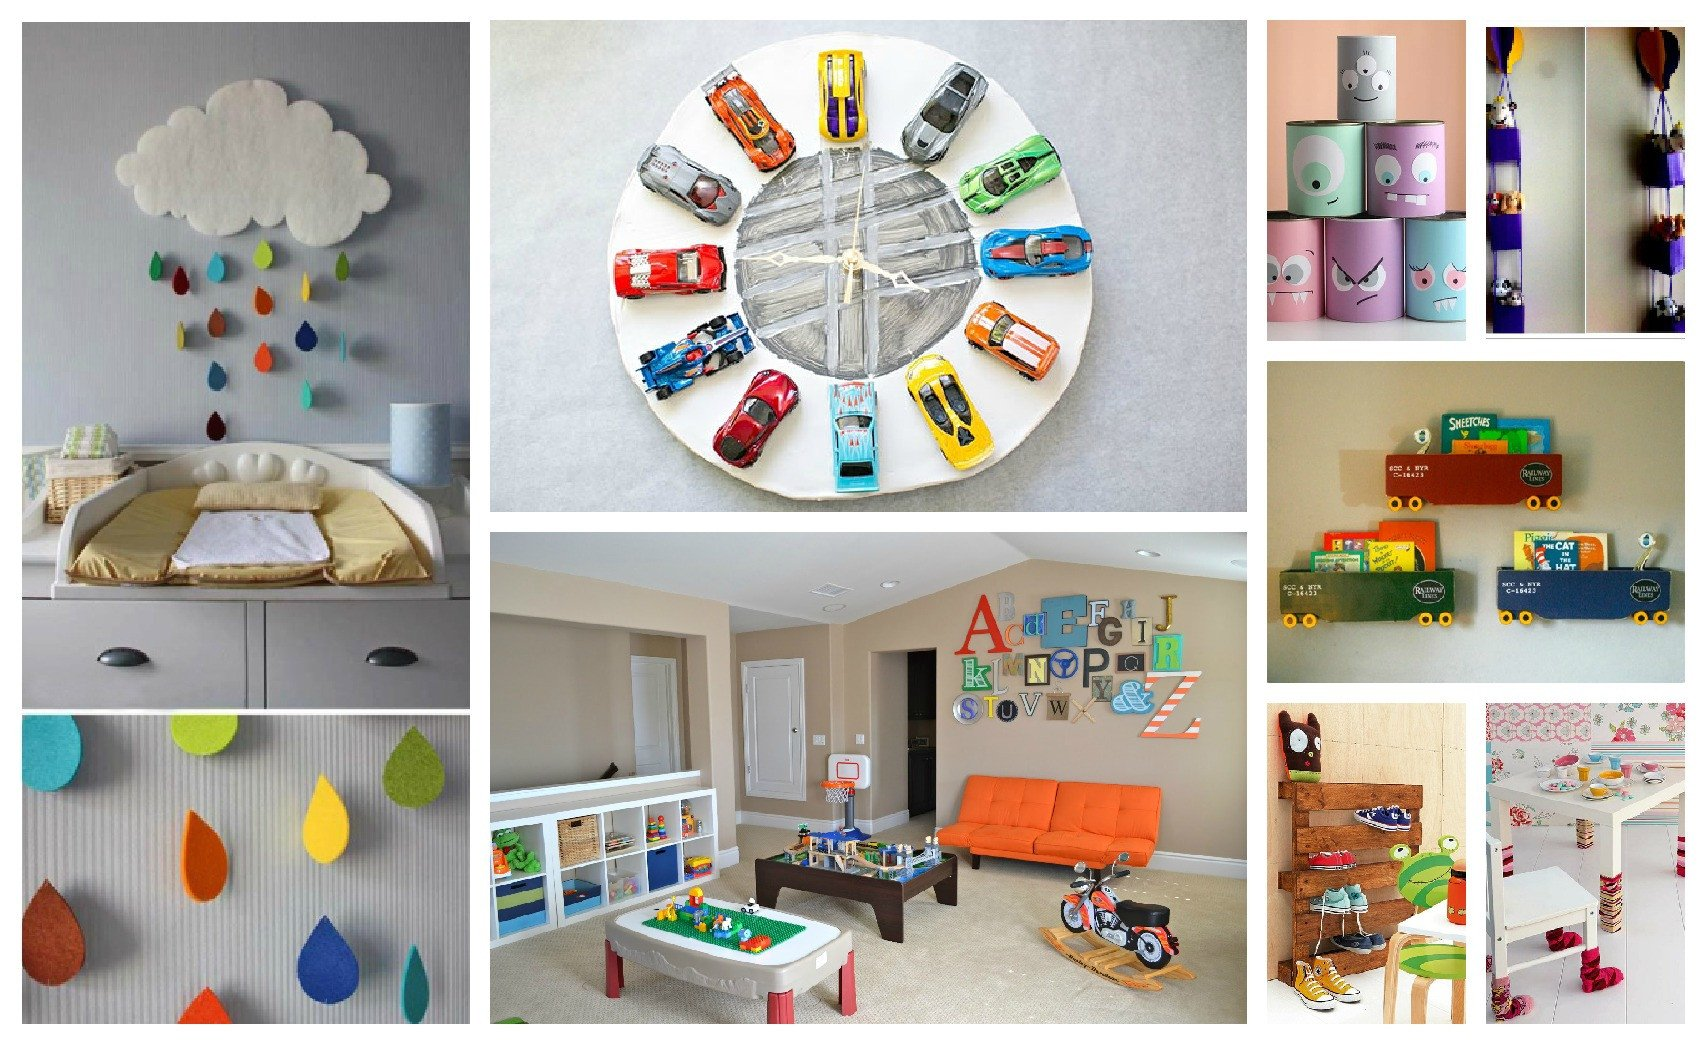 Diy Room Decor for Kids Inspirational Diy Kids Room Decor Ideas Archives